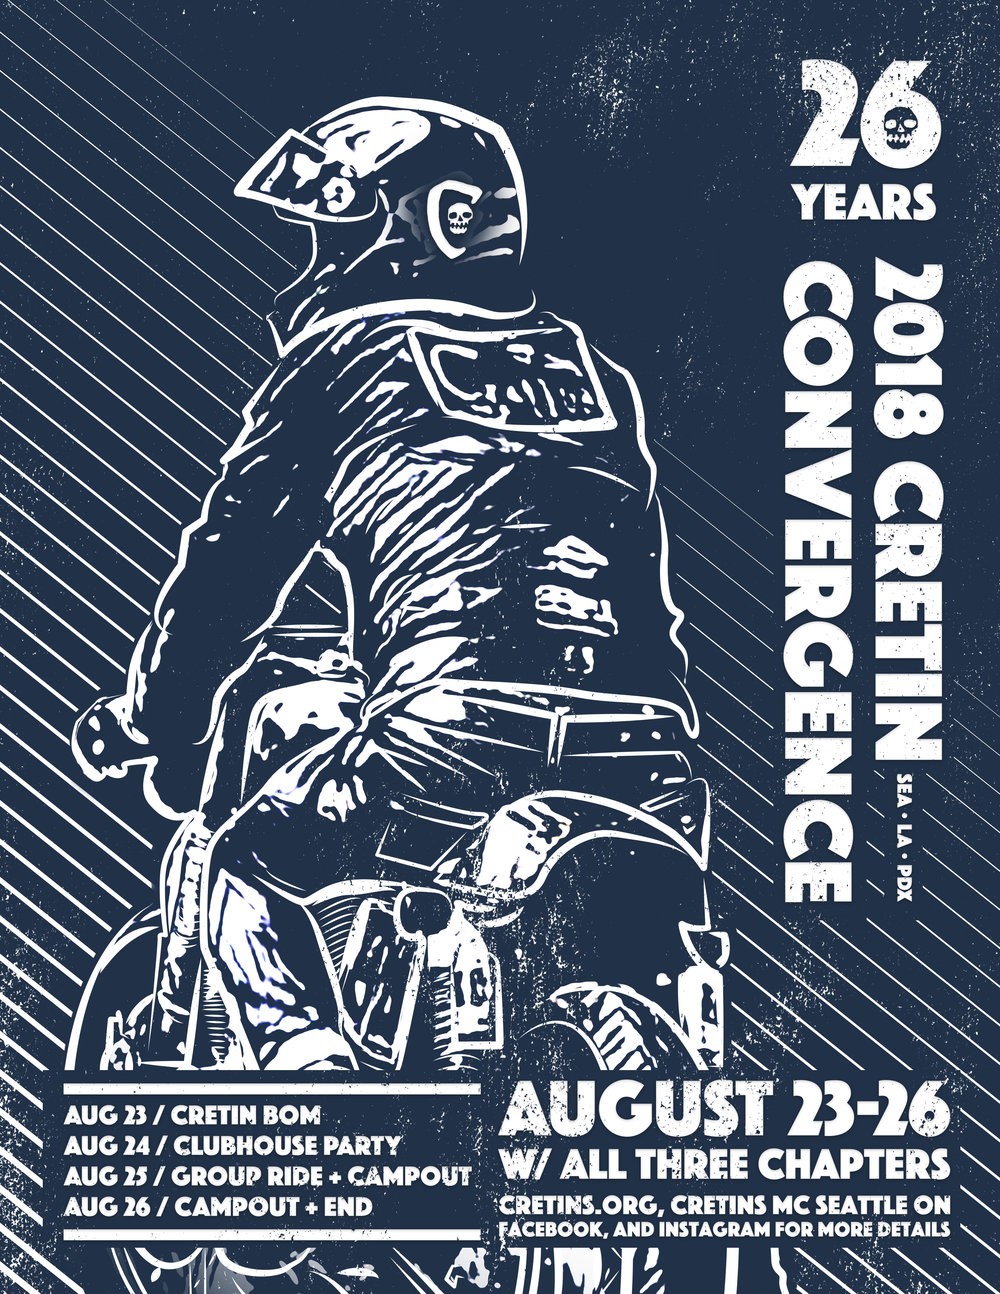 Upcoming Events - 2018 CRETINS CONVERGENCETHURS-SUN, AUG 23-26AUG 23: CRETIN BOM WITH ALL THREE CHAPTERSAUG 24: CLUBHOUSE PARTYAUG 25: GROUP RIDE THROUGH THE ISLANDSAUG 26: GROUP RIDES AND GO HOMEALL WELCOME TO JOIN IN WITH MEMBERS FROM ALL THREE CHAPTERS AT ANY OF THE EVENTS. MORE DETAILS AVAILABLE VIA FACEBOOK AND INSTAGRAM.